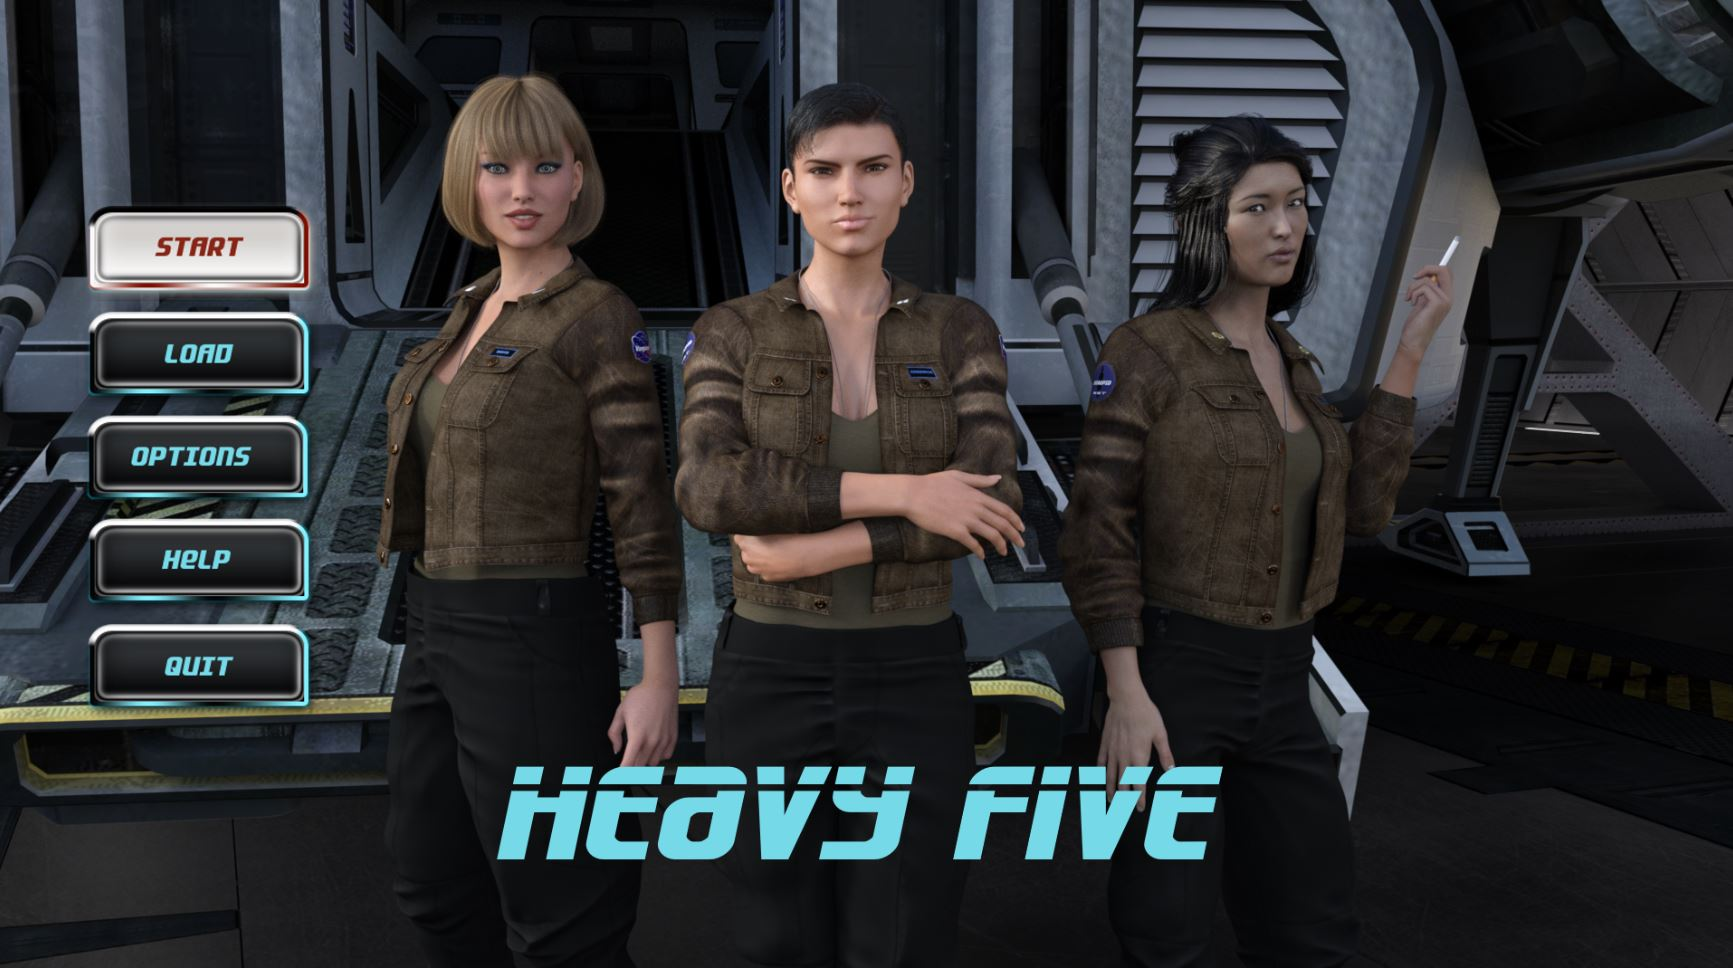 Heavy Five – Chapter 1 Remastered - Free incest hentai PC game 10